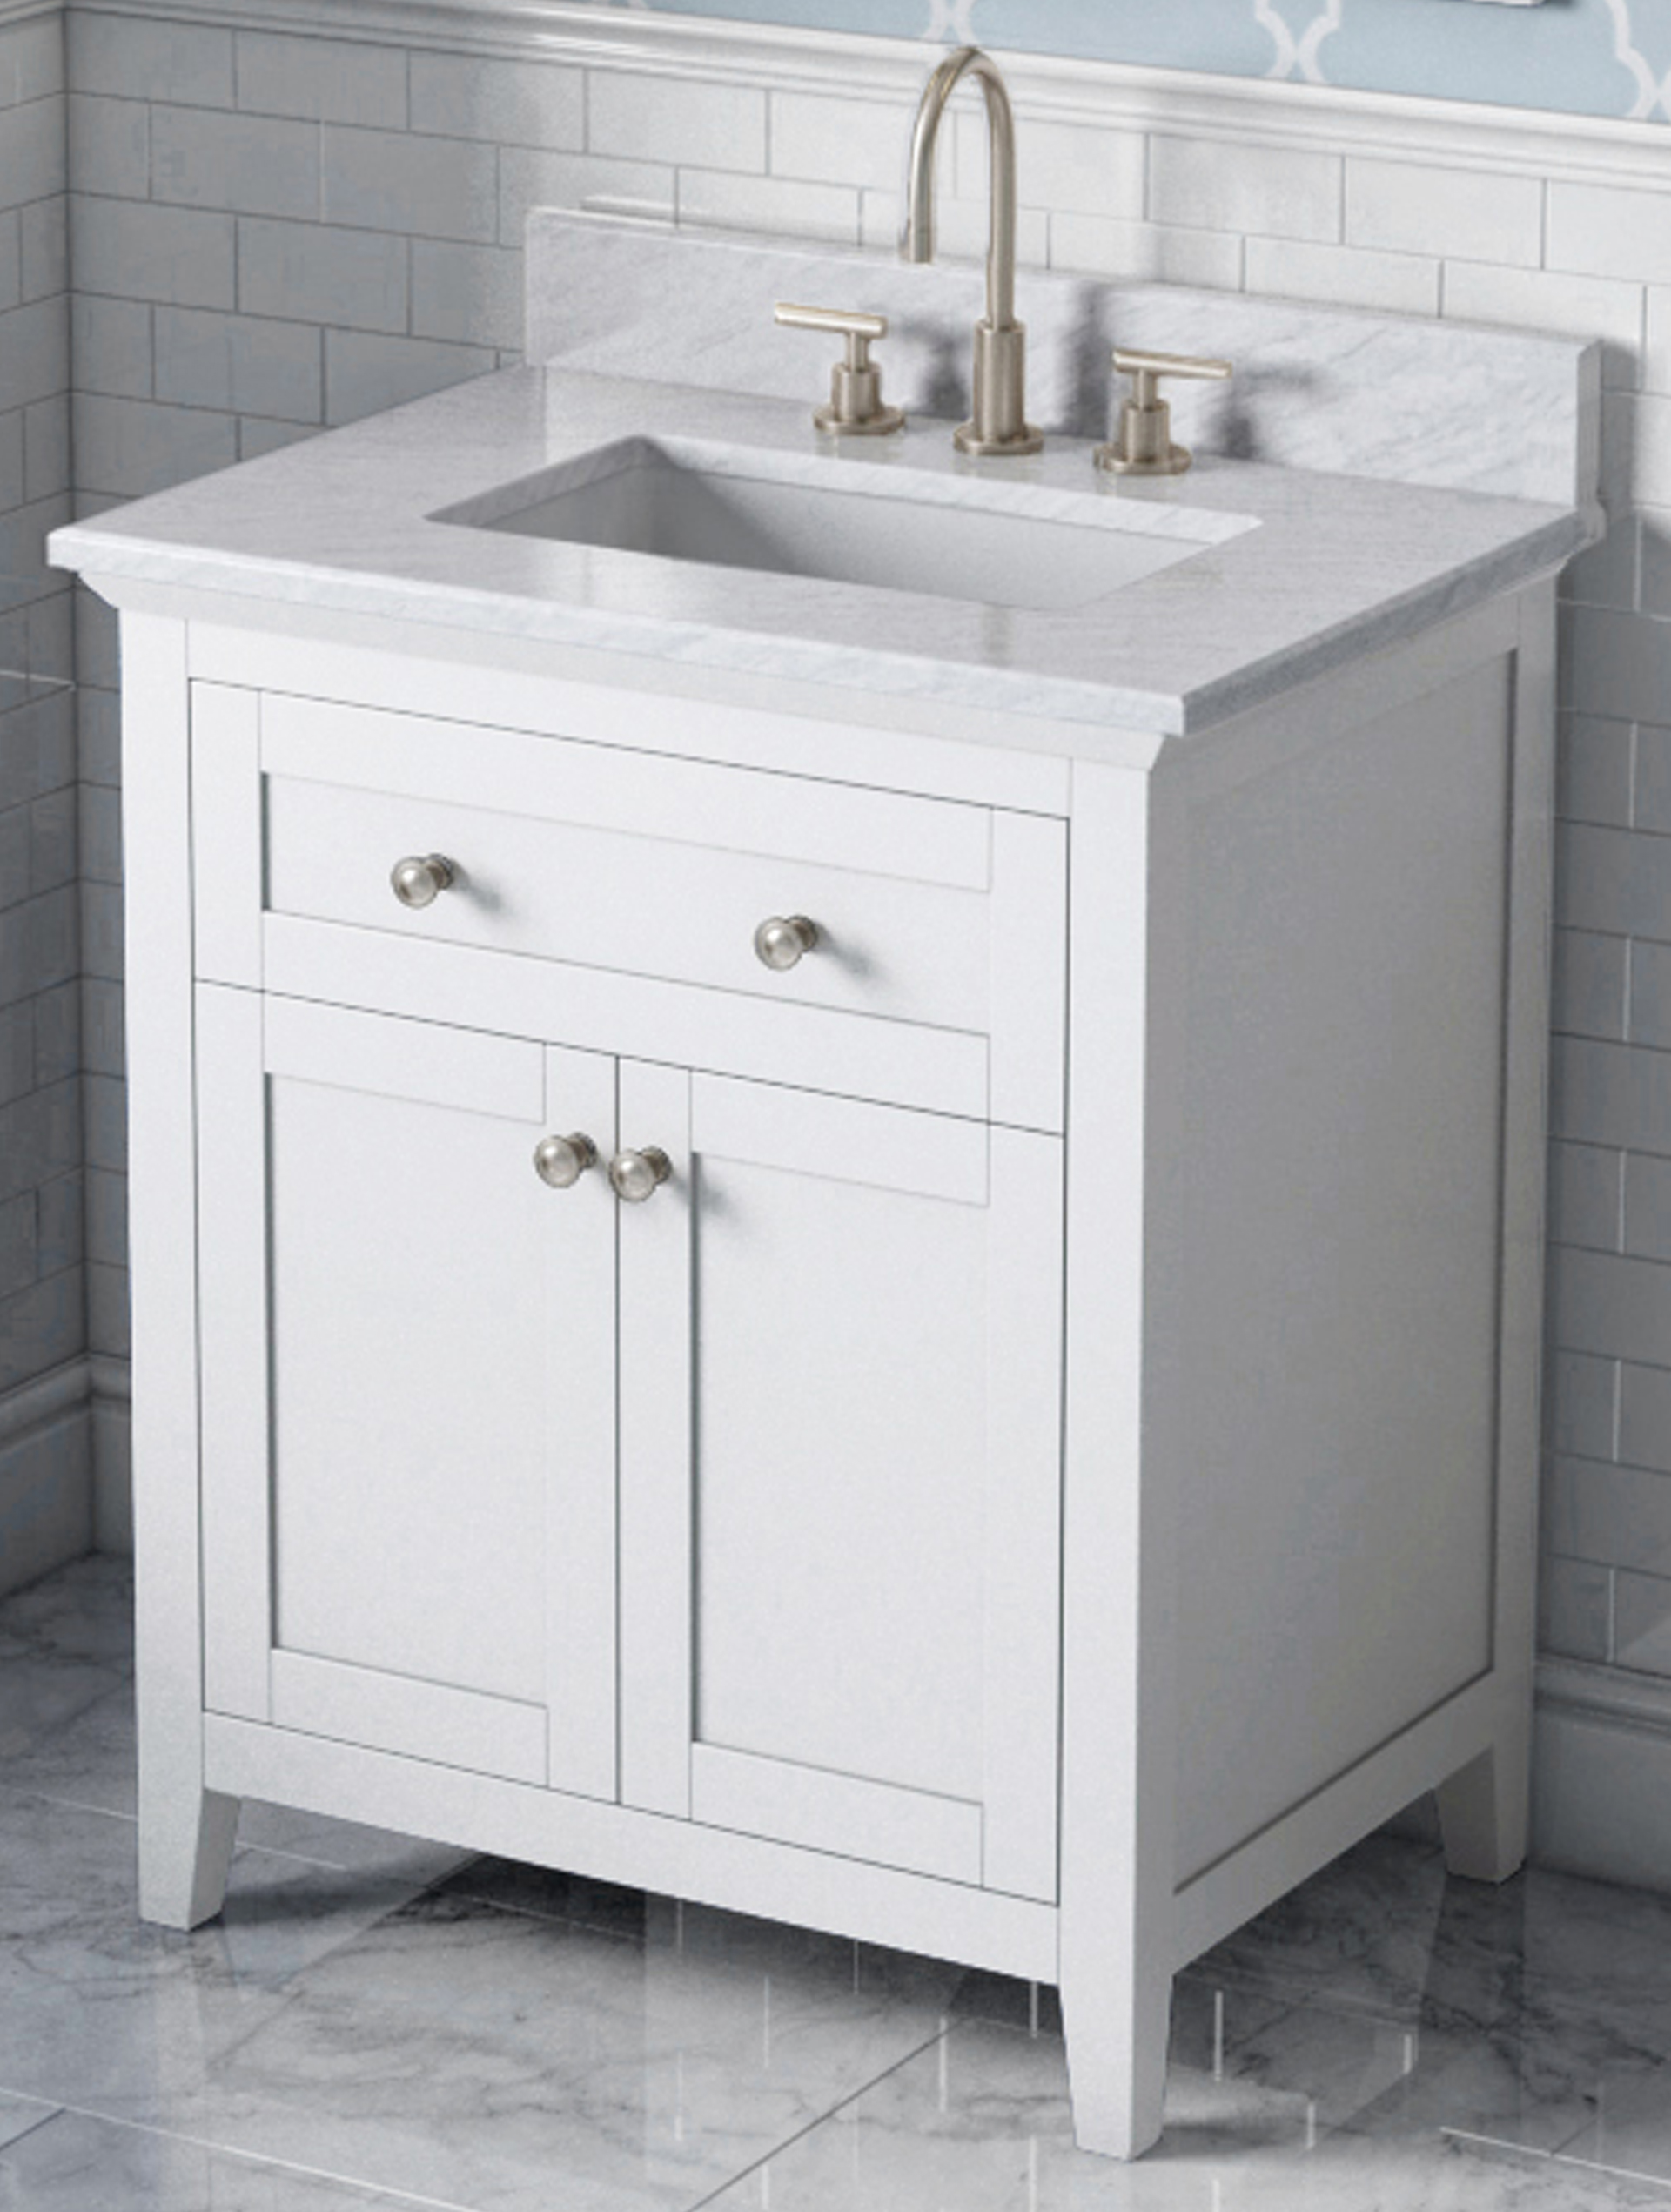 "30"" Single Sink White Bathroom Vanity White Carrara Marble Vanity Top, Undermount Rectangle Bowl"